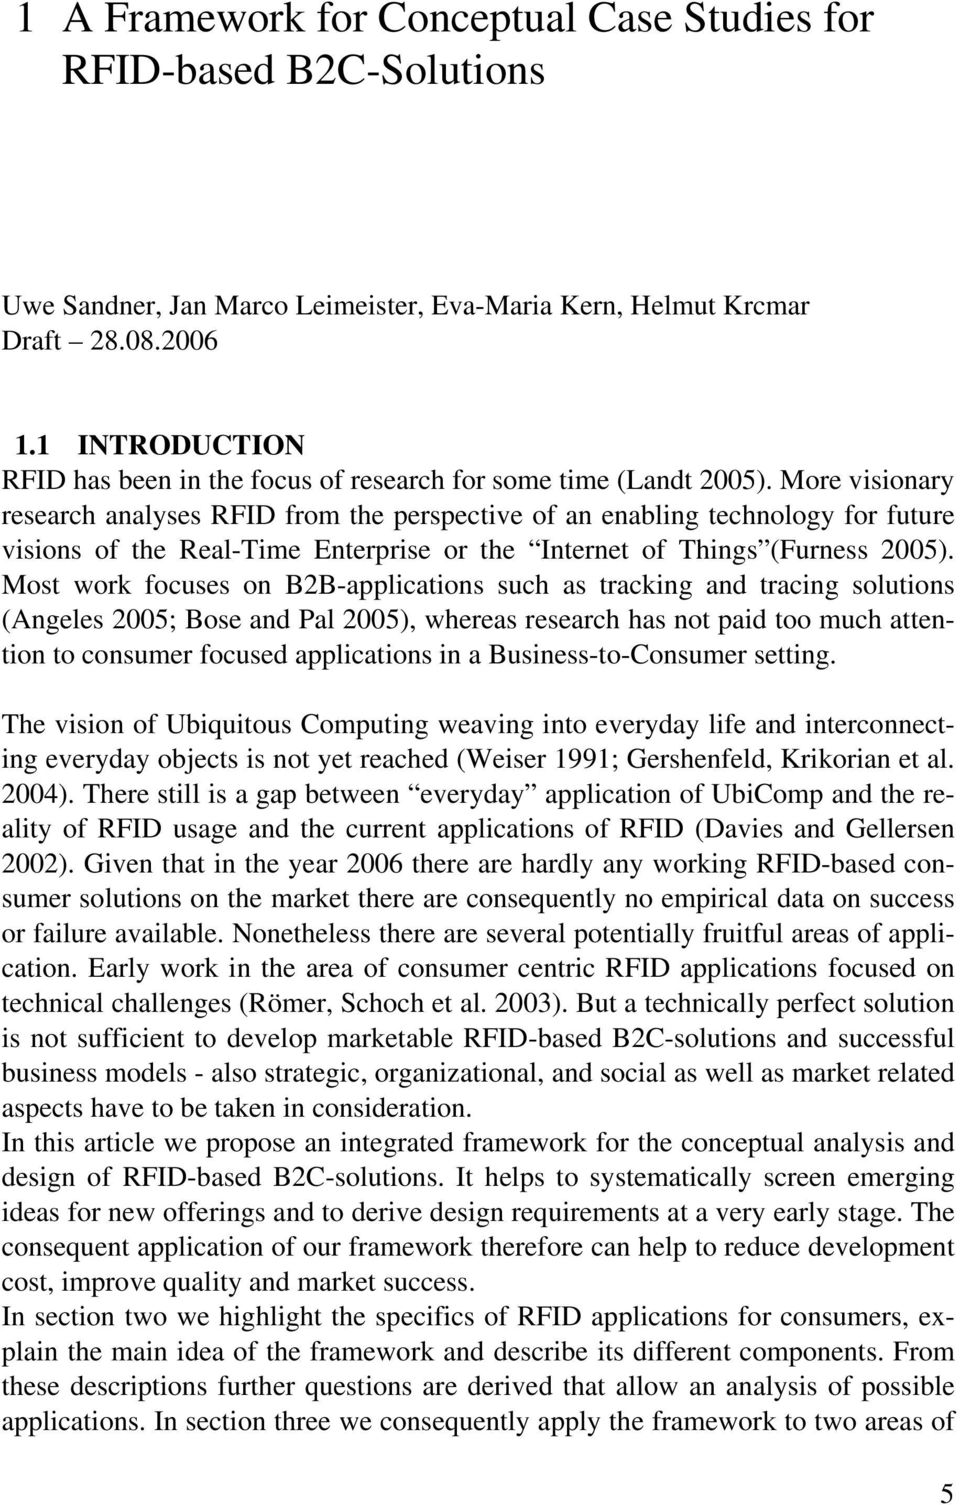 More visionary research analyses RFID from the perspective of an enabling technology for future visions of the Real-Time Enterprise or the Internet of Things (Furness 2005).